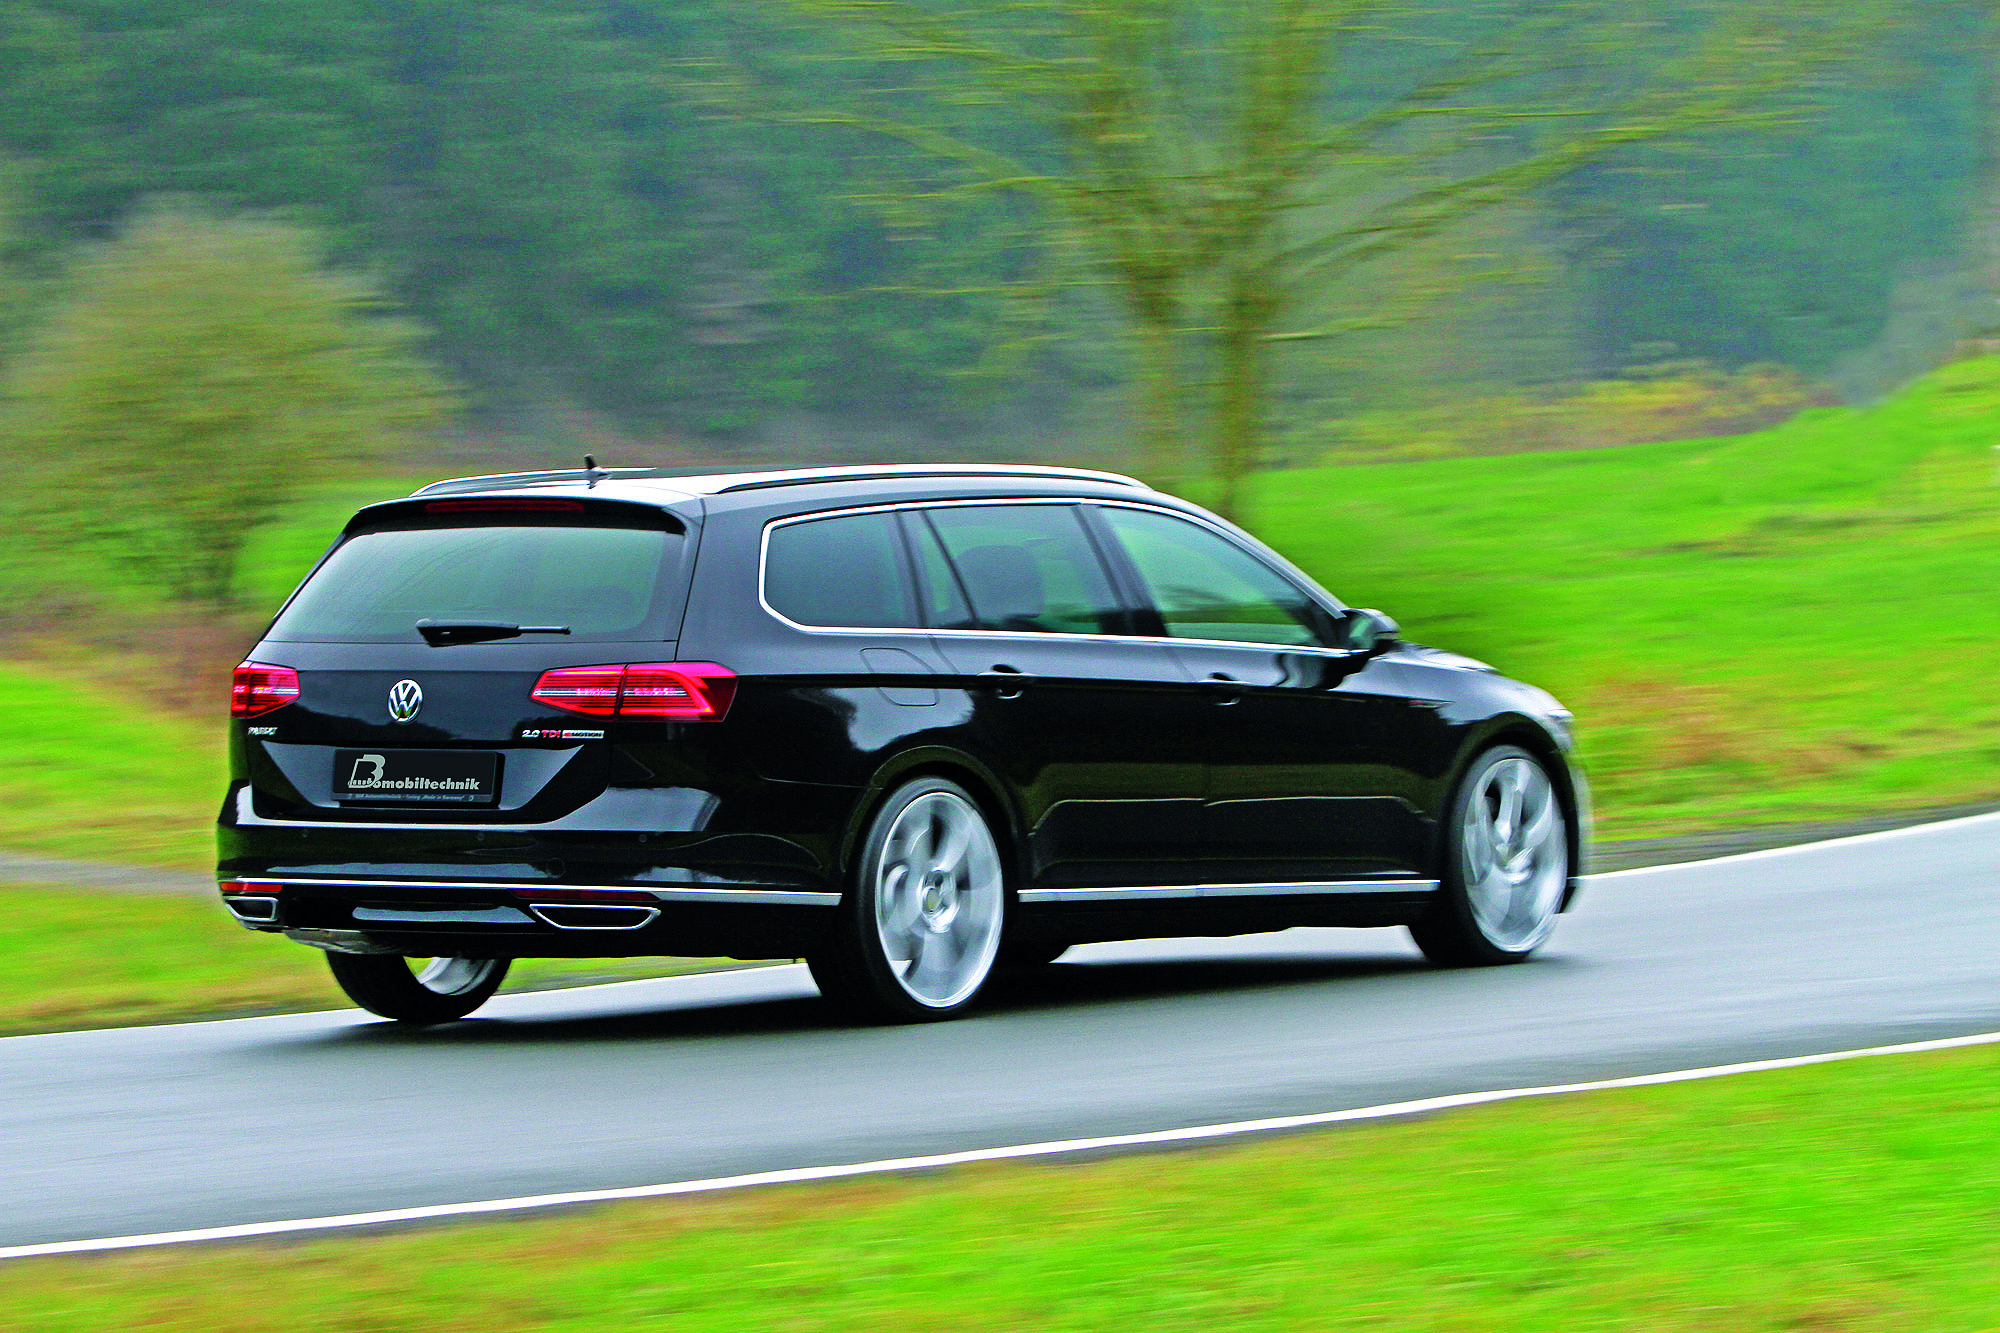 vw passat 2 0 tdi b8 tuning paket von b b. Black Bedroom Furniture Sets. Home Design Ideas